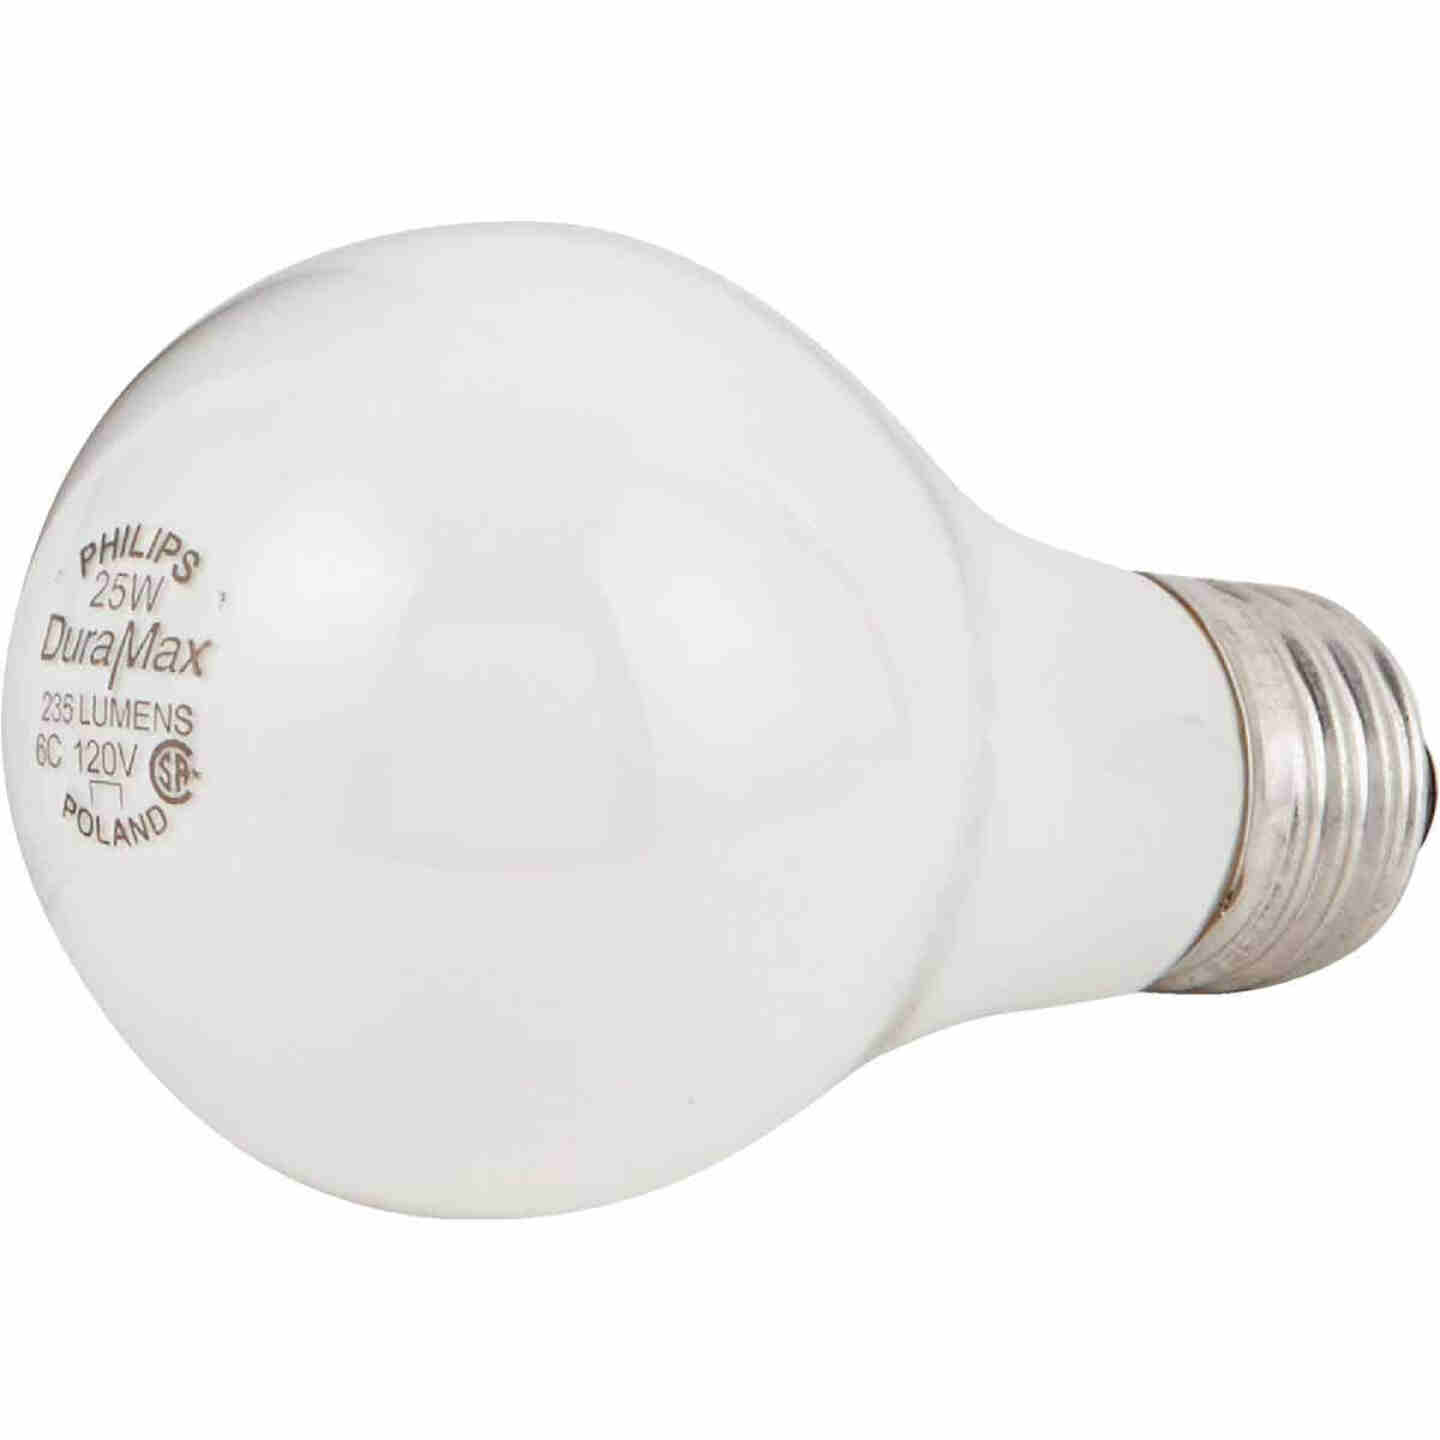 Philips Duramax 25W Frosted Soft White Medium Base A19 Incandescent Light Bulb (2-Pack) Image 3